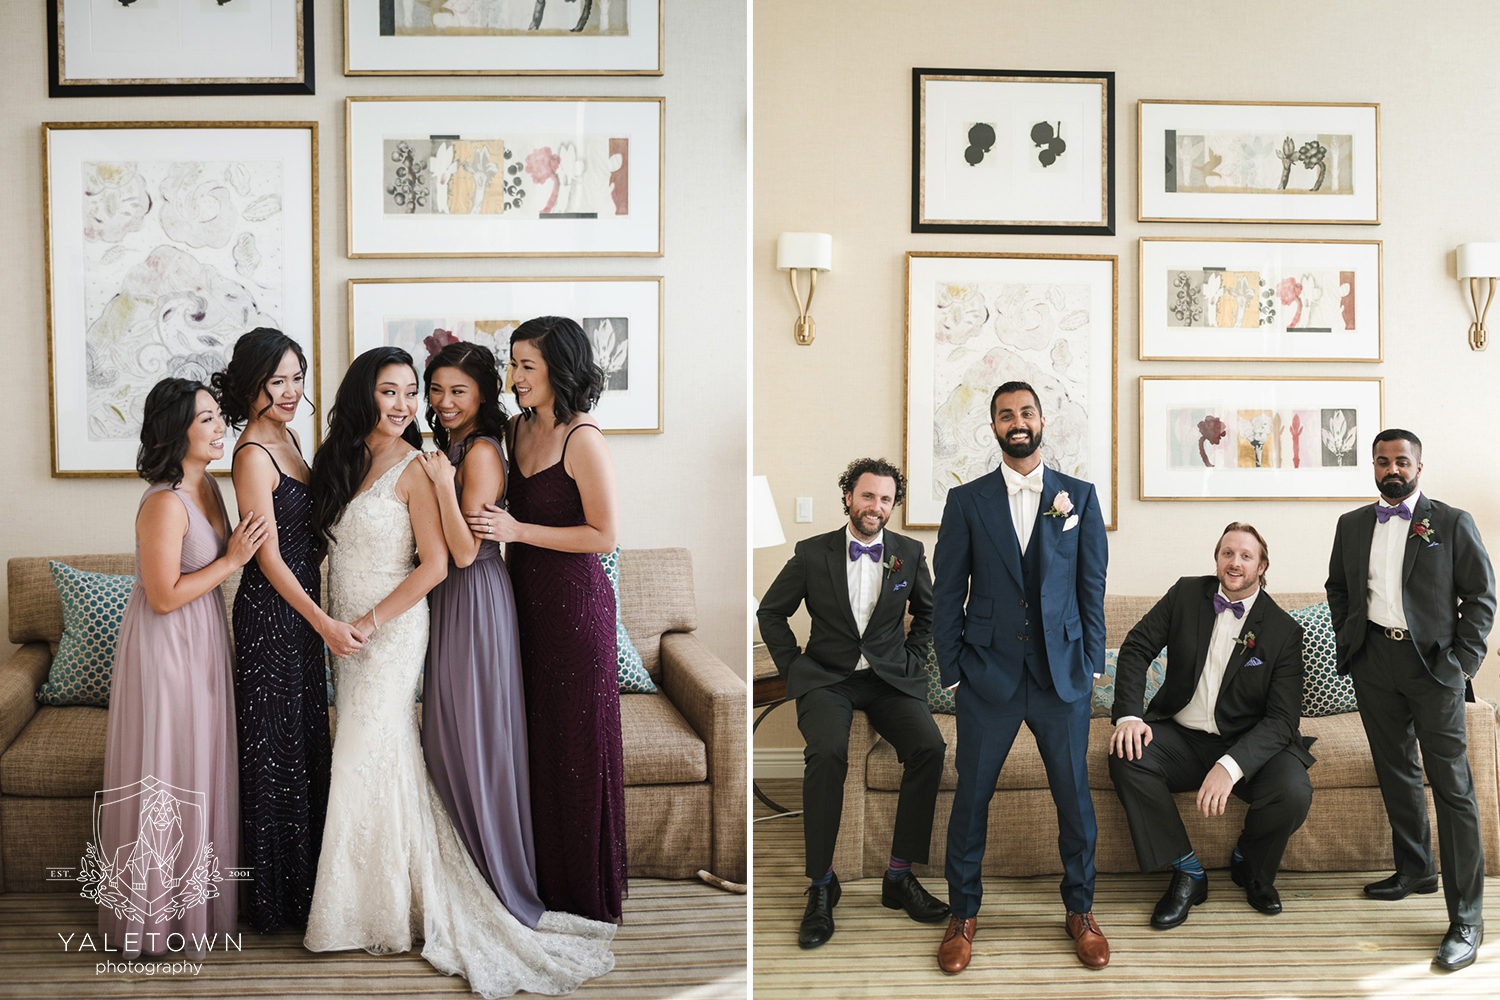 bridal-party-penthouse-suite-four-seasons-hotel-vancouver-wedding-yaletown-photography-photo-23.jpg